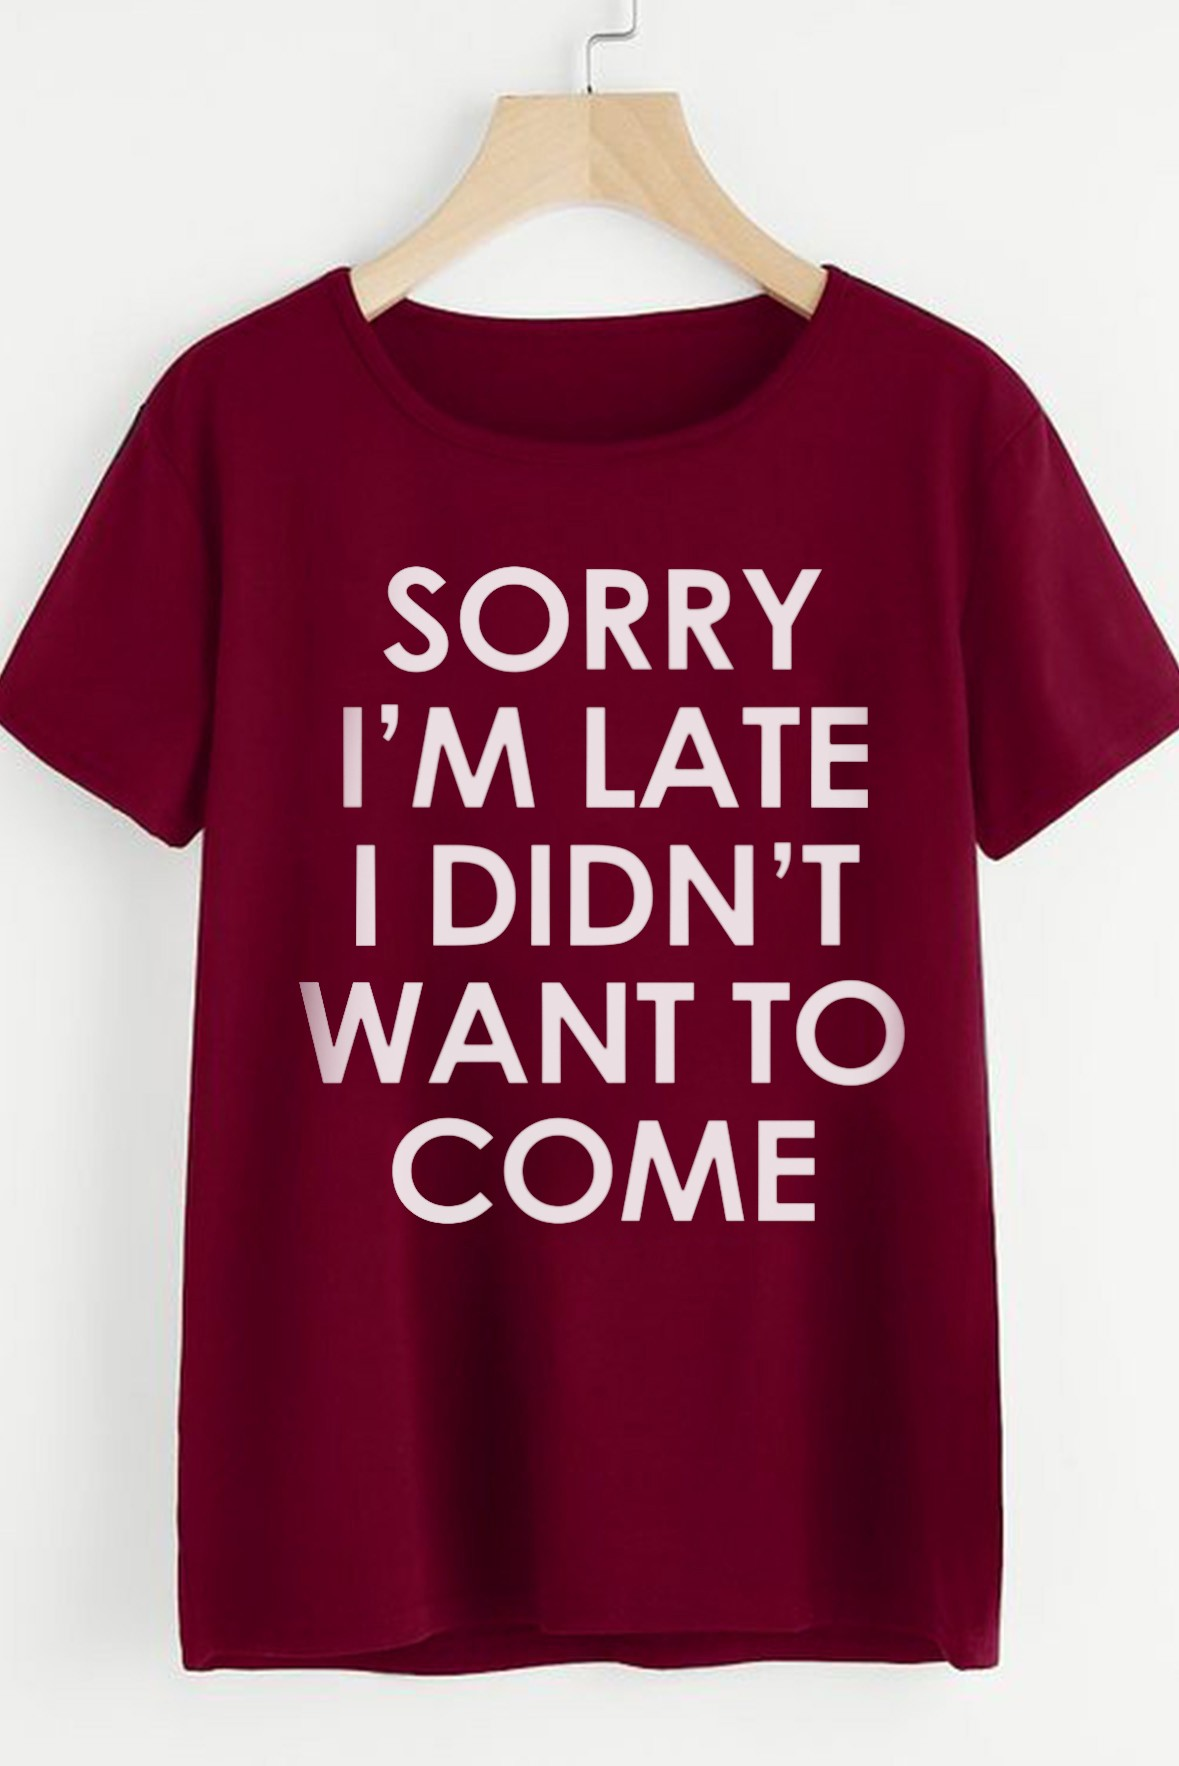 Want to come t-shirt